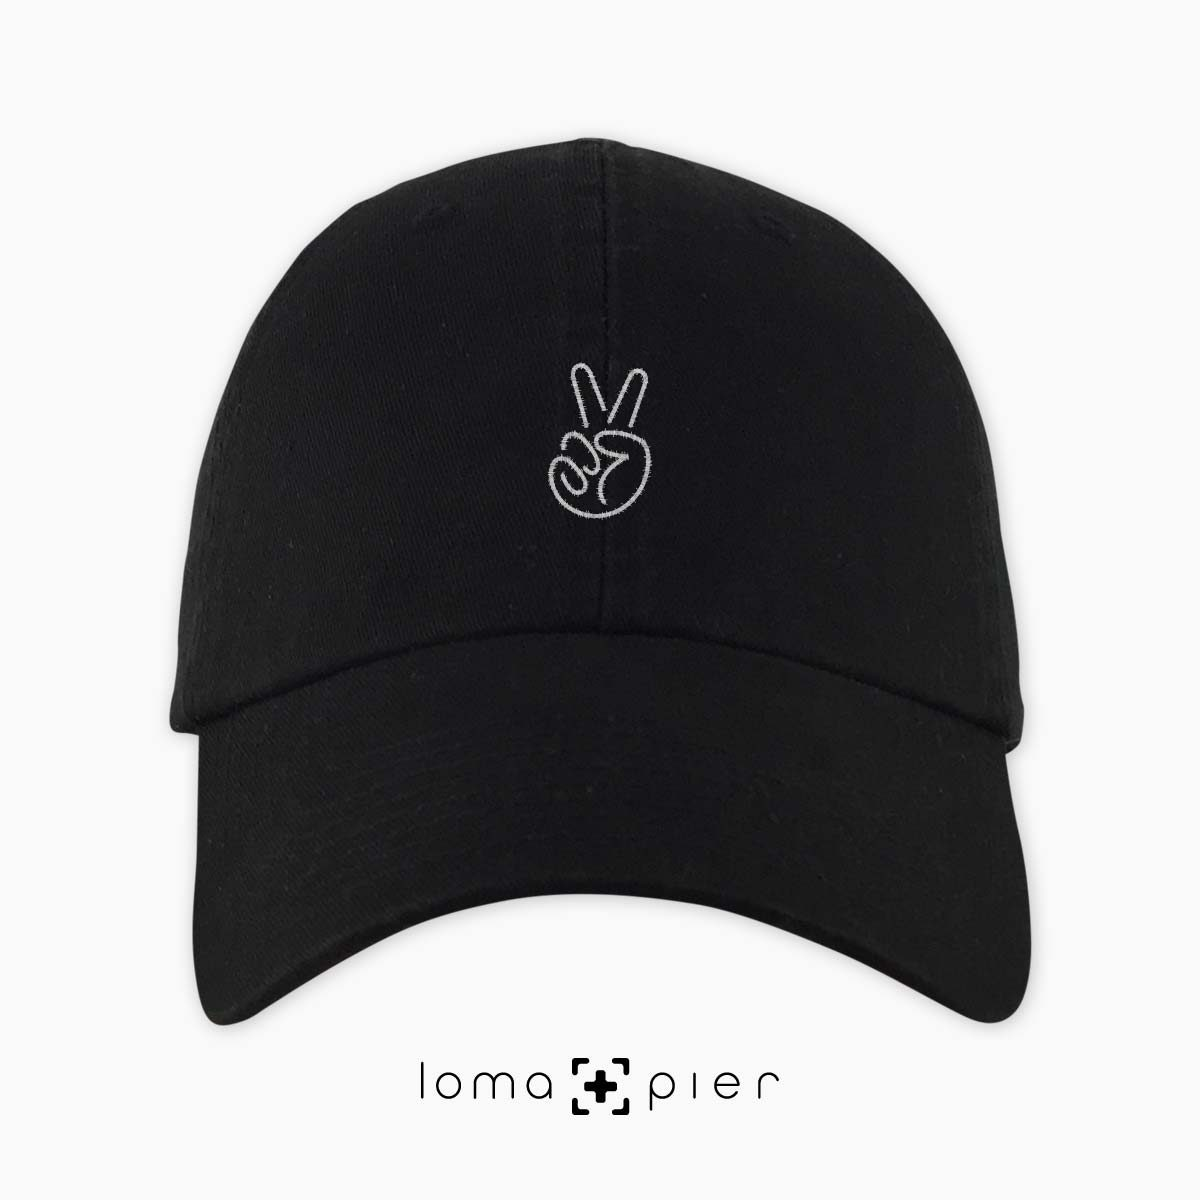 PEACE SIGN HAND icon embroidered on a black unstructured dad hat with white thread by loma+pier hat store made in the USA